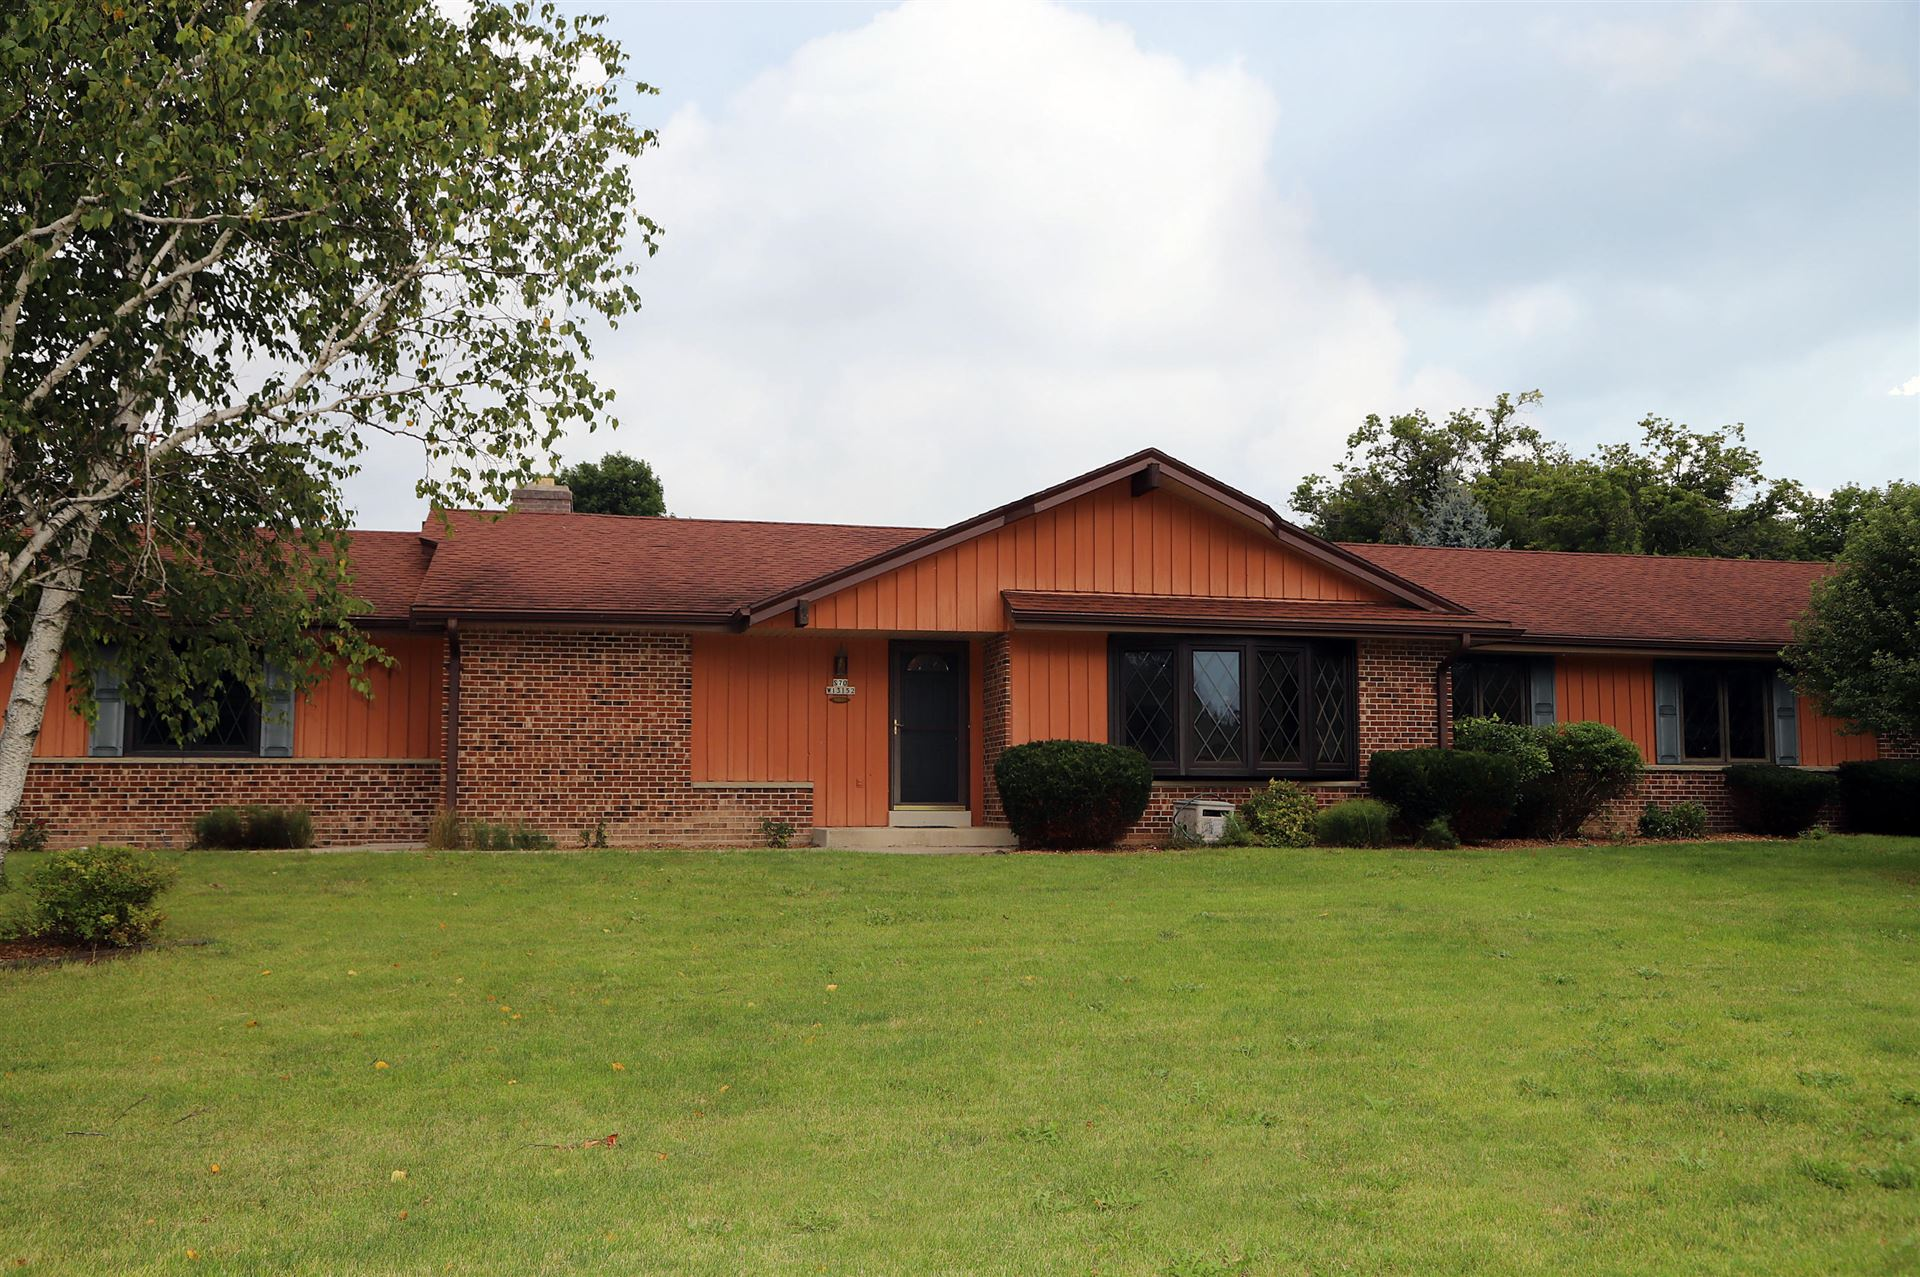 S70W13152 Woods Rd, Muskego, WI 53150 - #: 1703829